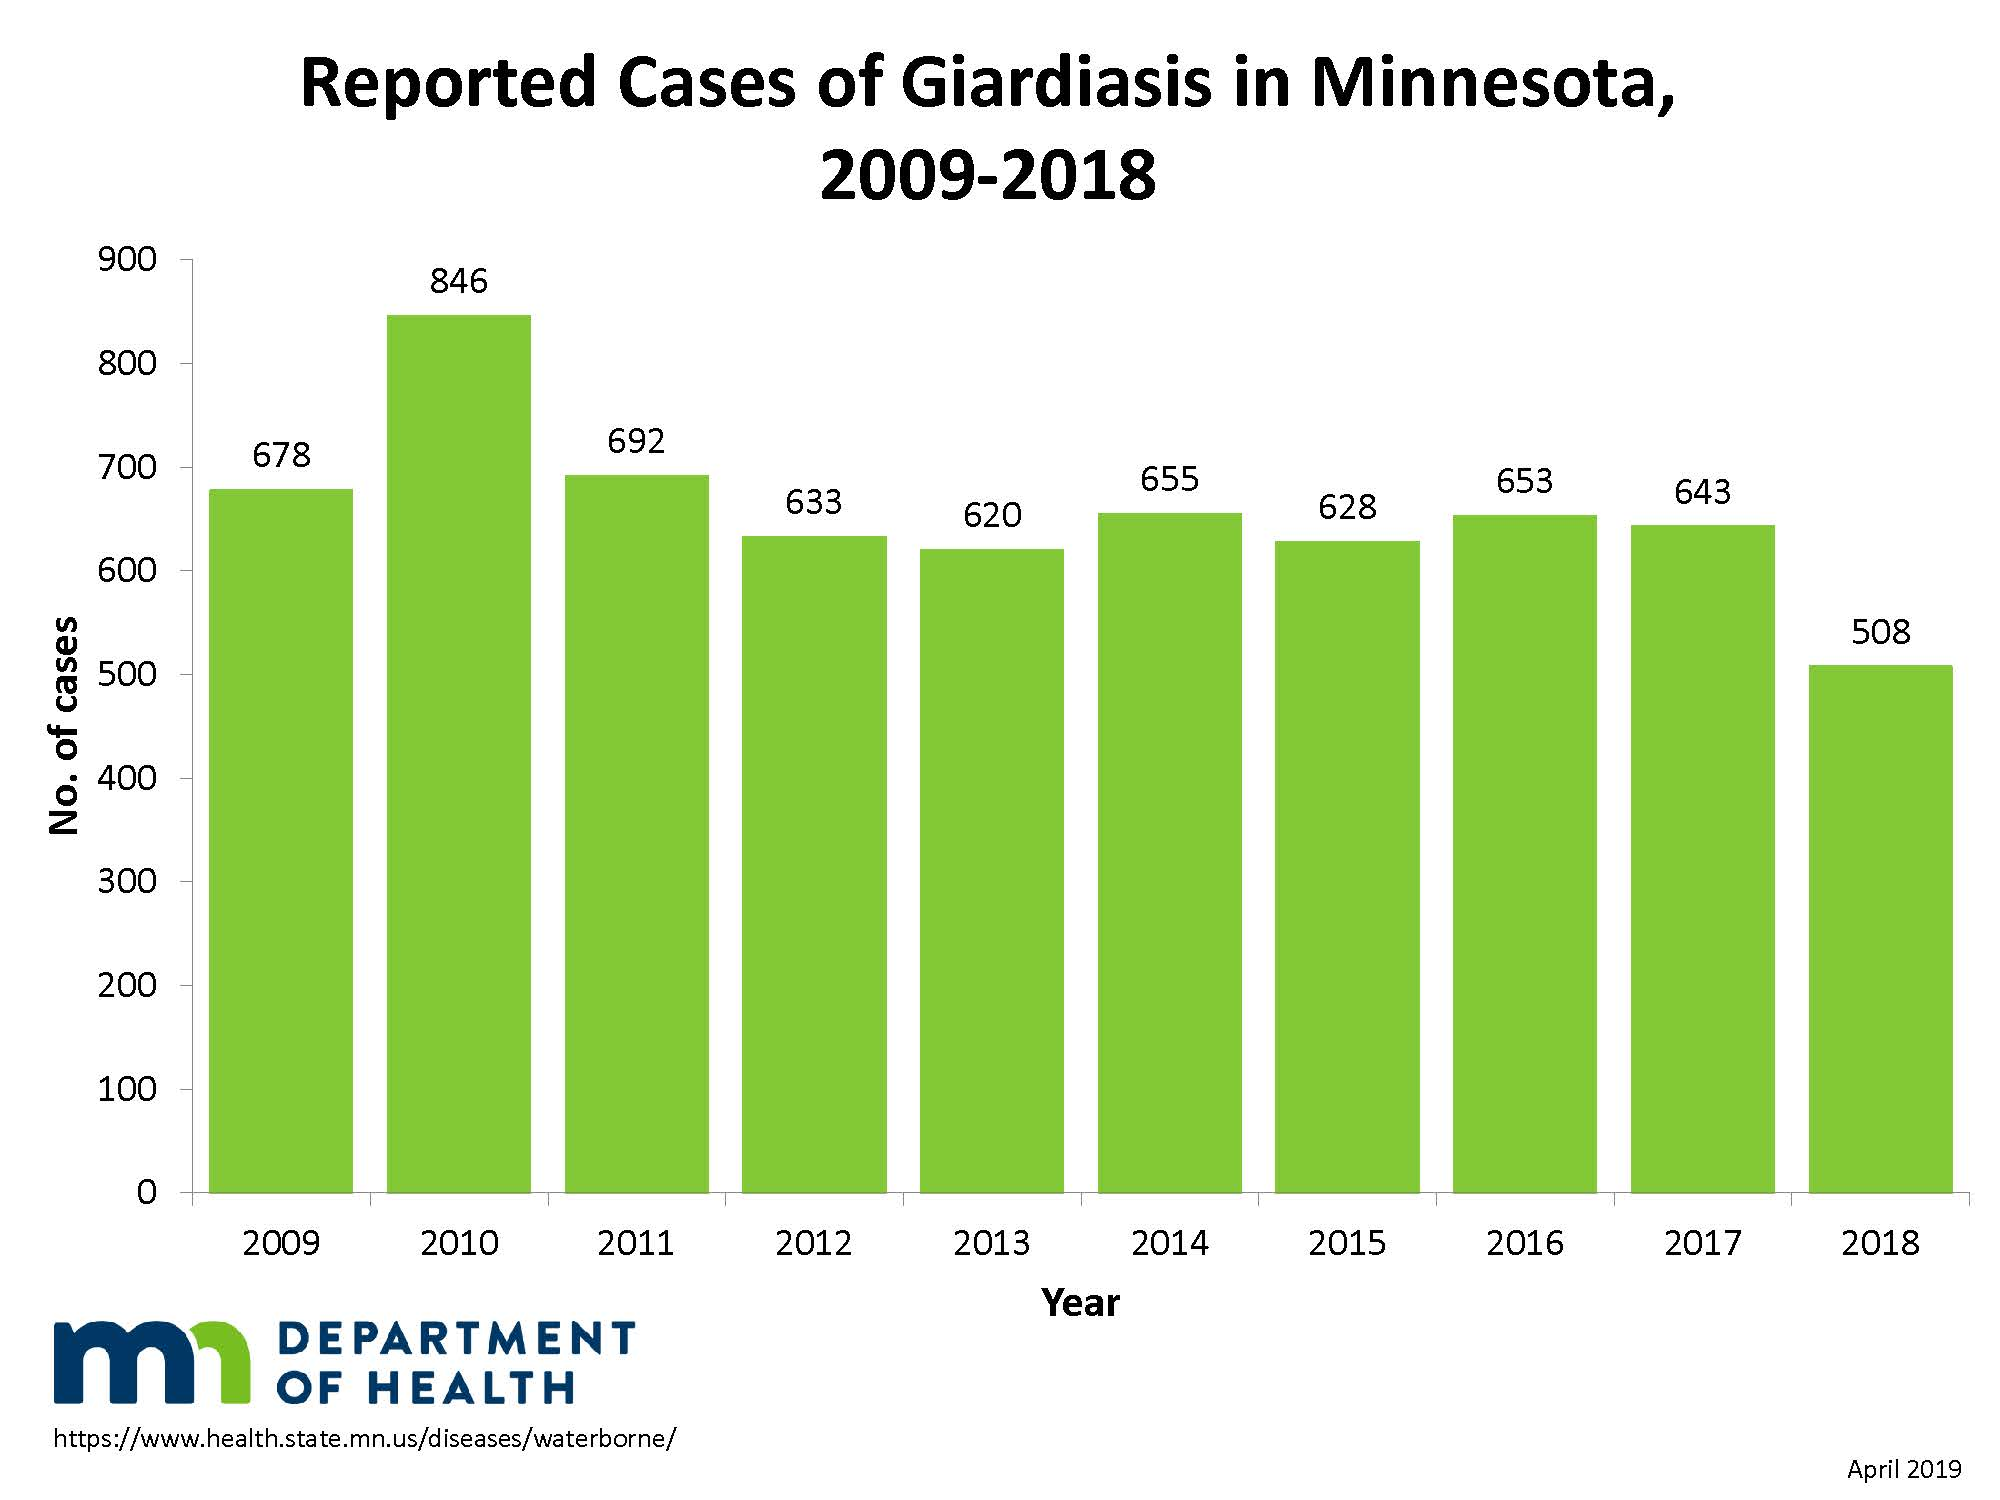 Reported giardia cases in Minnesota 2009-2018